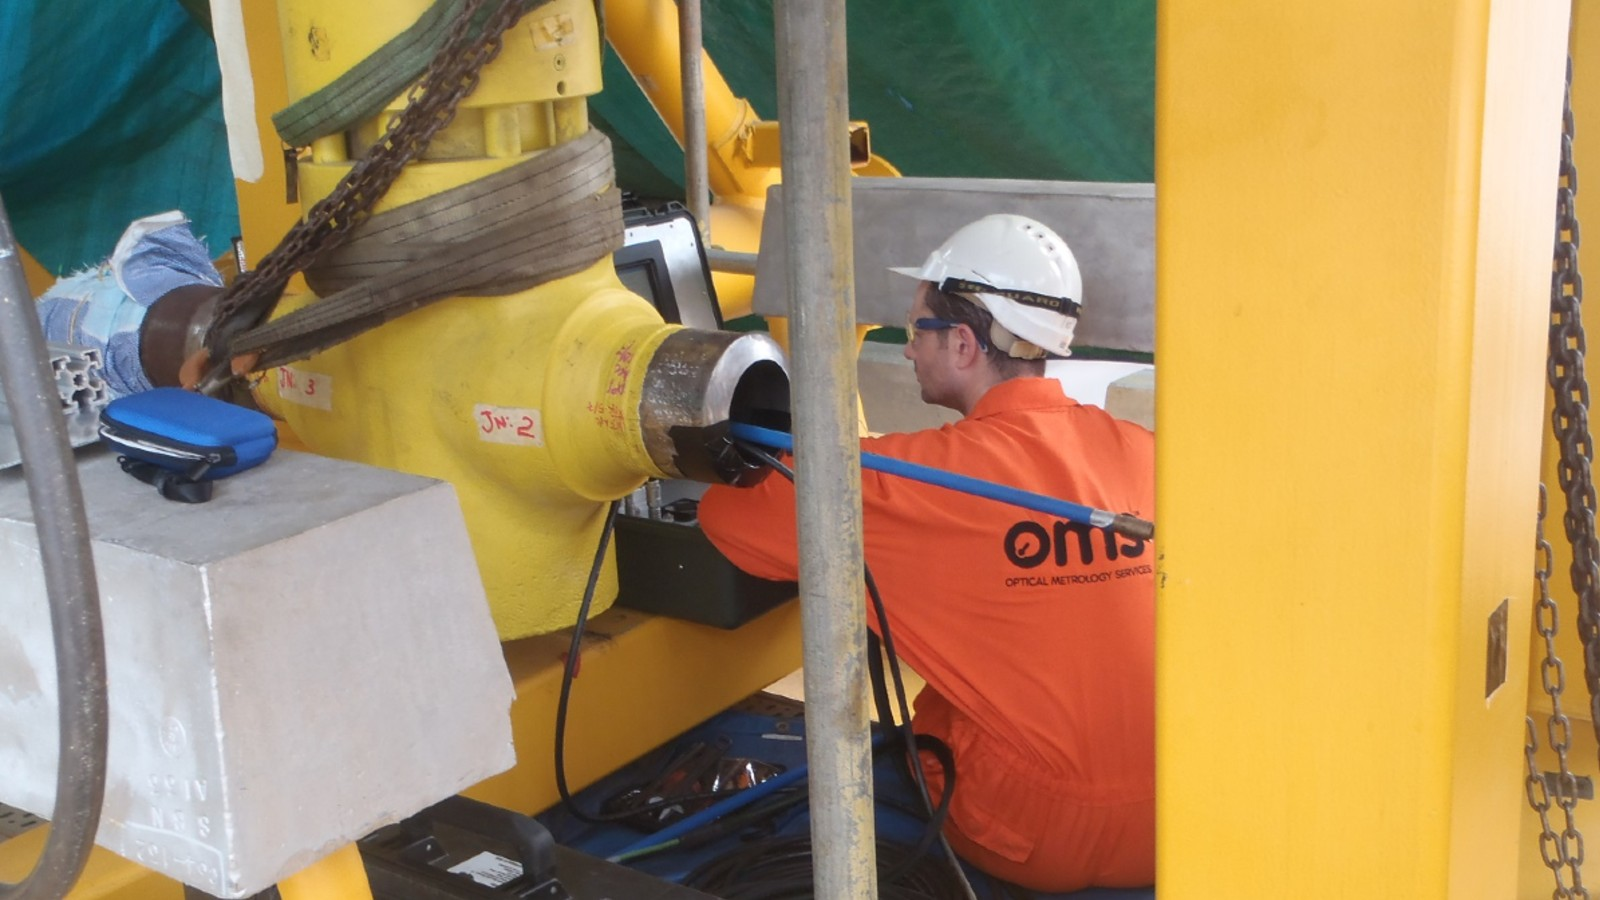 Spotlight On: Neil Mitchinson, OMS Operator - An insight into the life of an OMS Operator